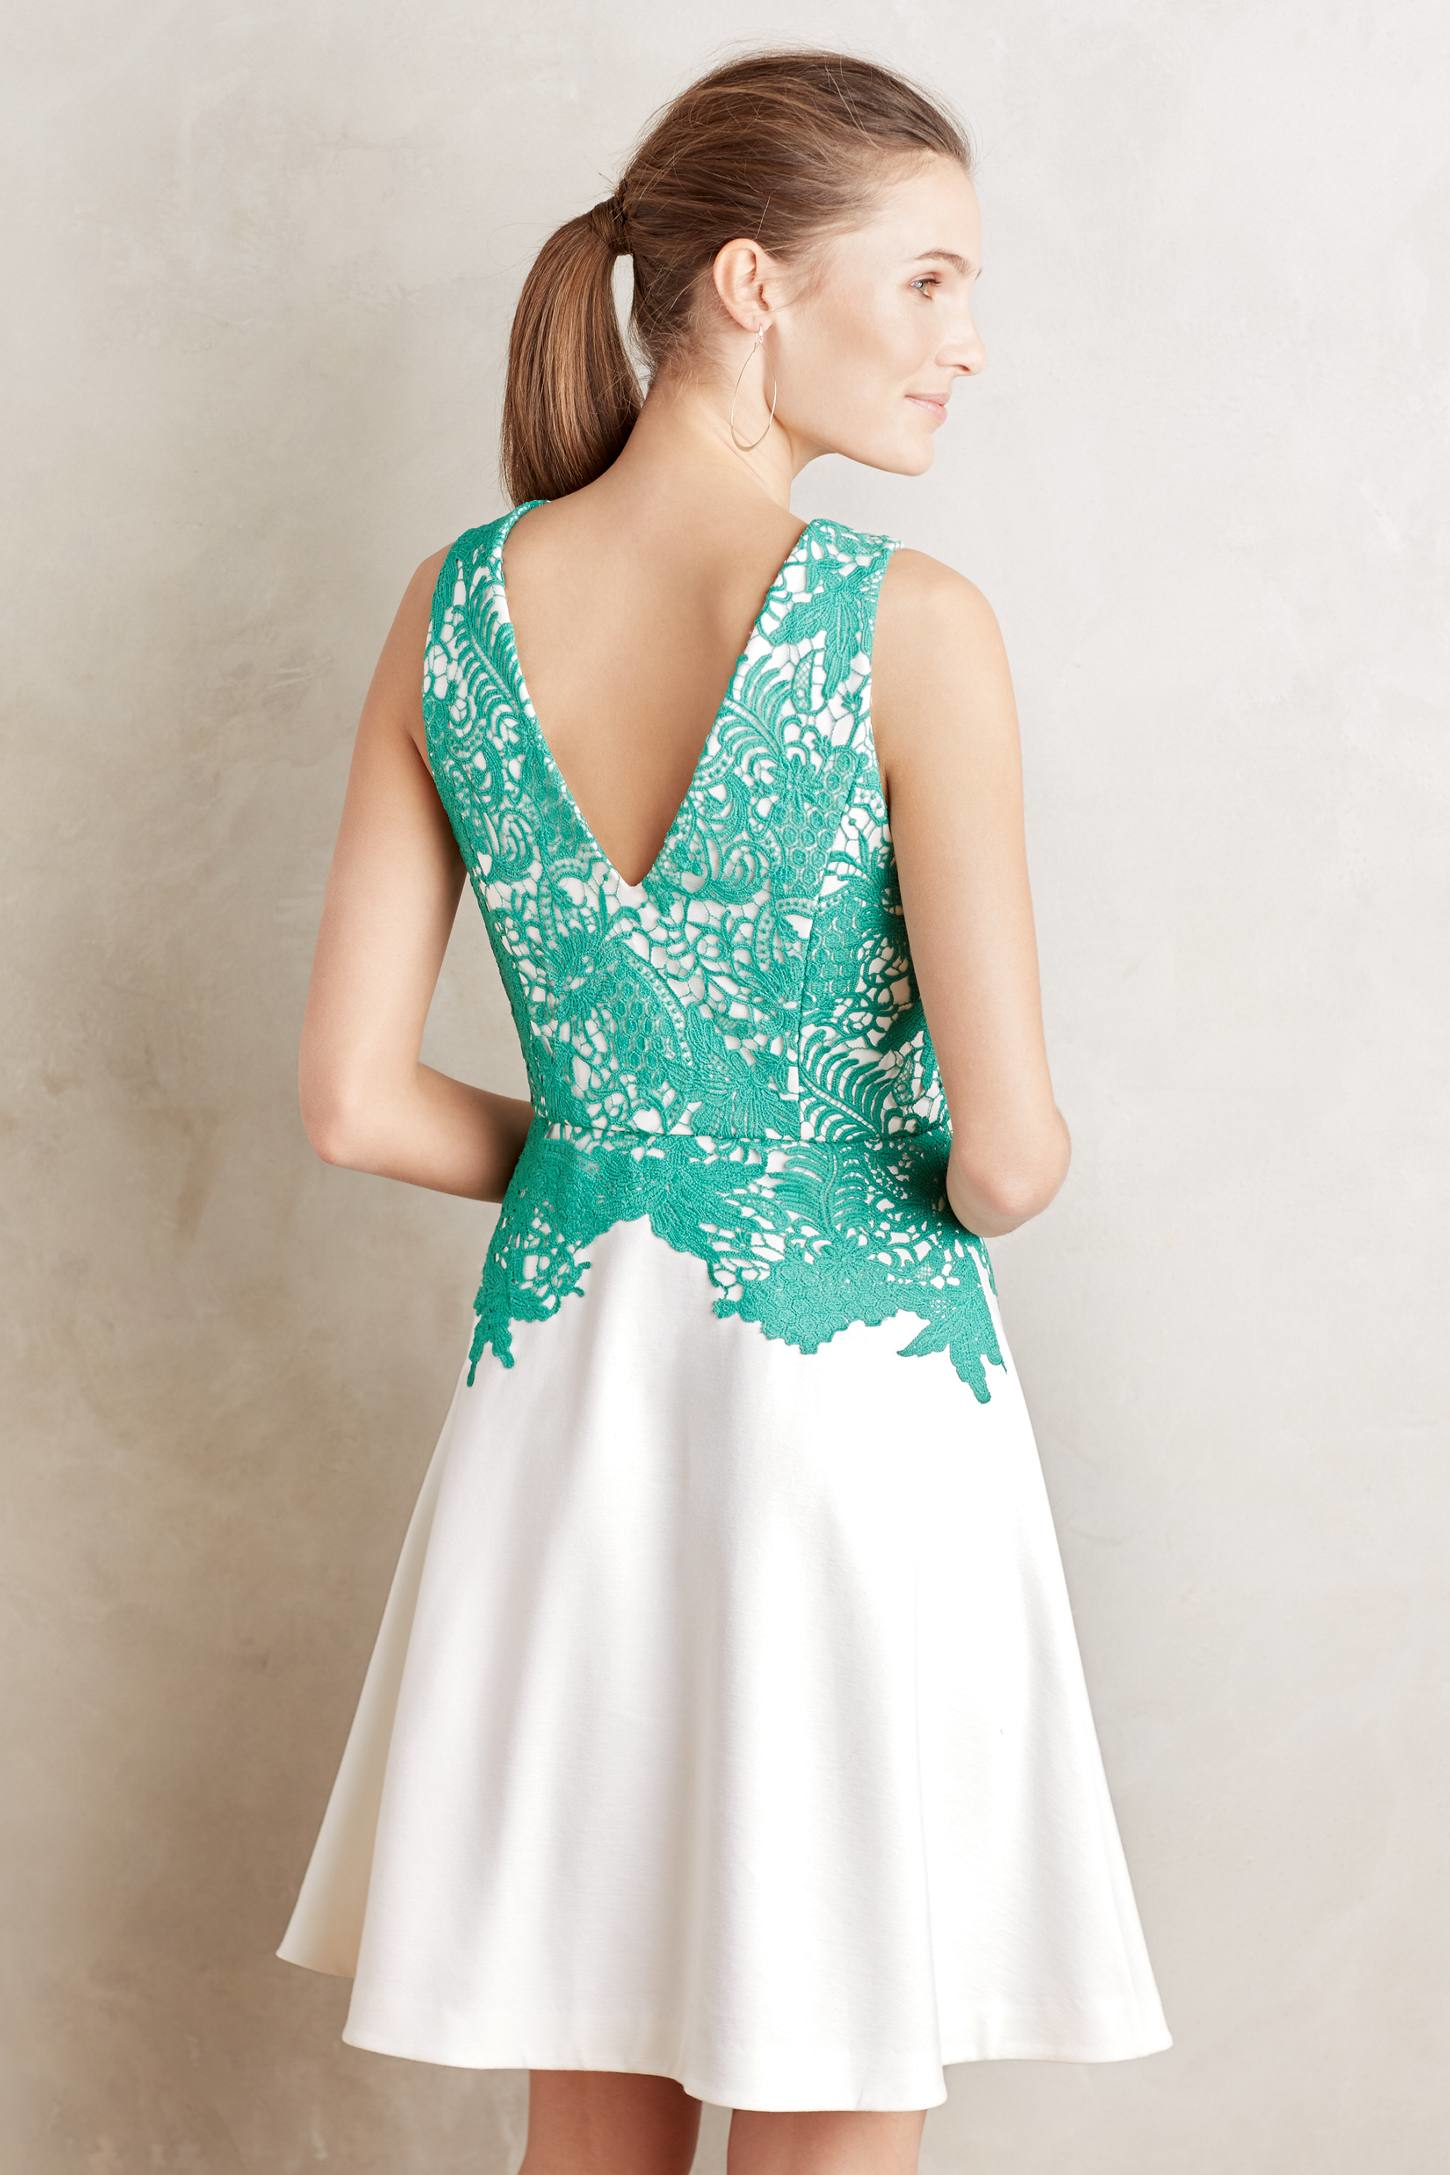 Anthropologie paneled lace dress